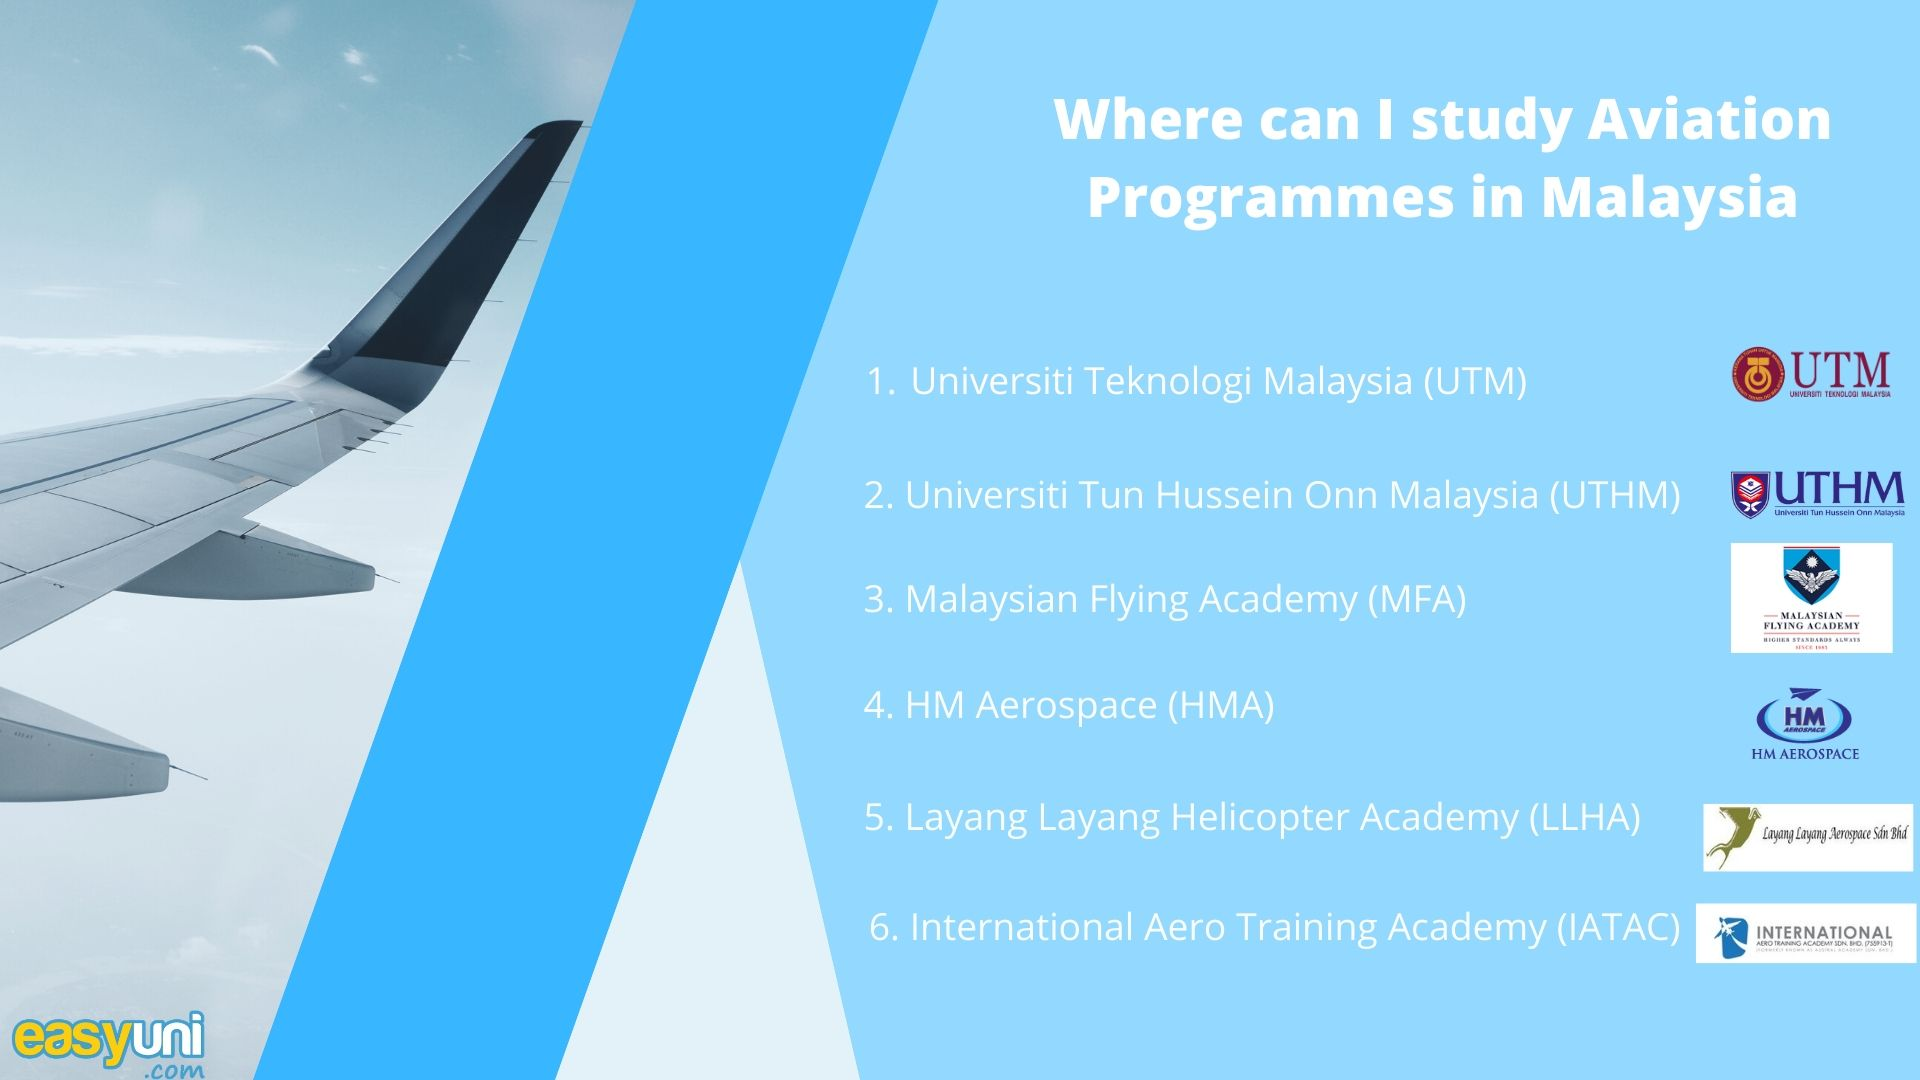 Where can I study Aviation Programmes in Malaysia